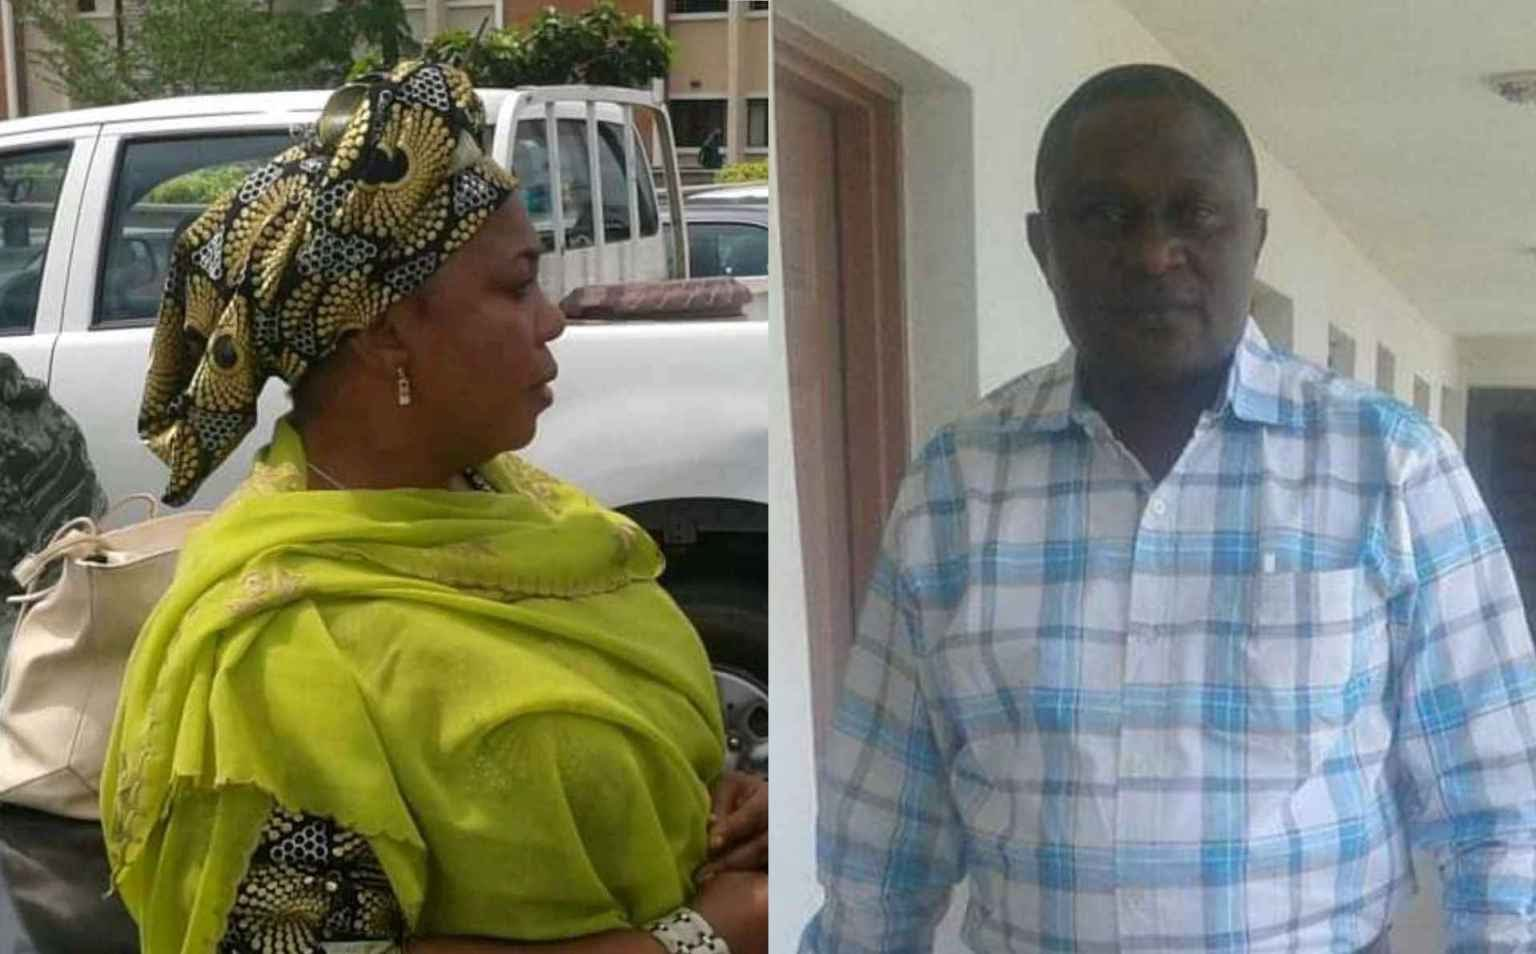 Trial Of Alleged N100m Kwara Bursary Scam Adjourned Due To Counsel's Absence In Court